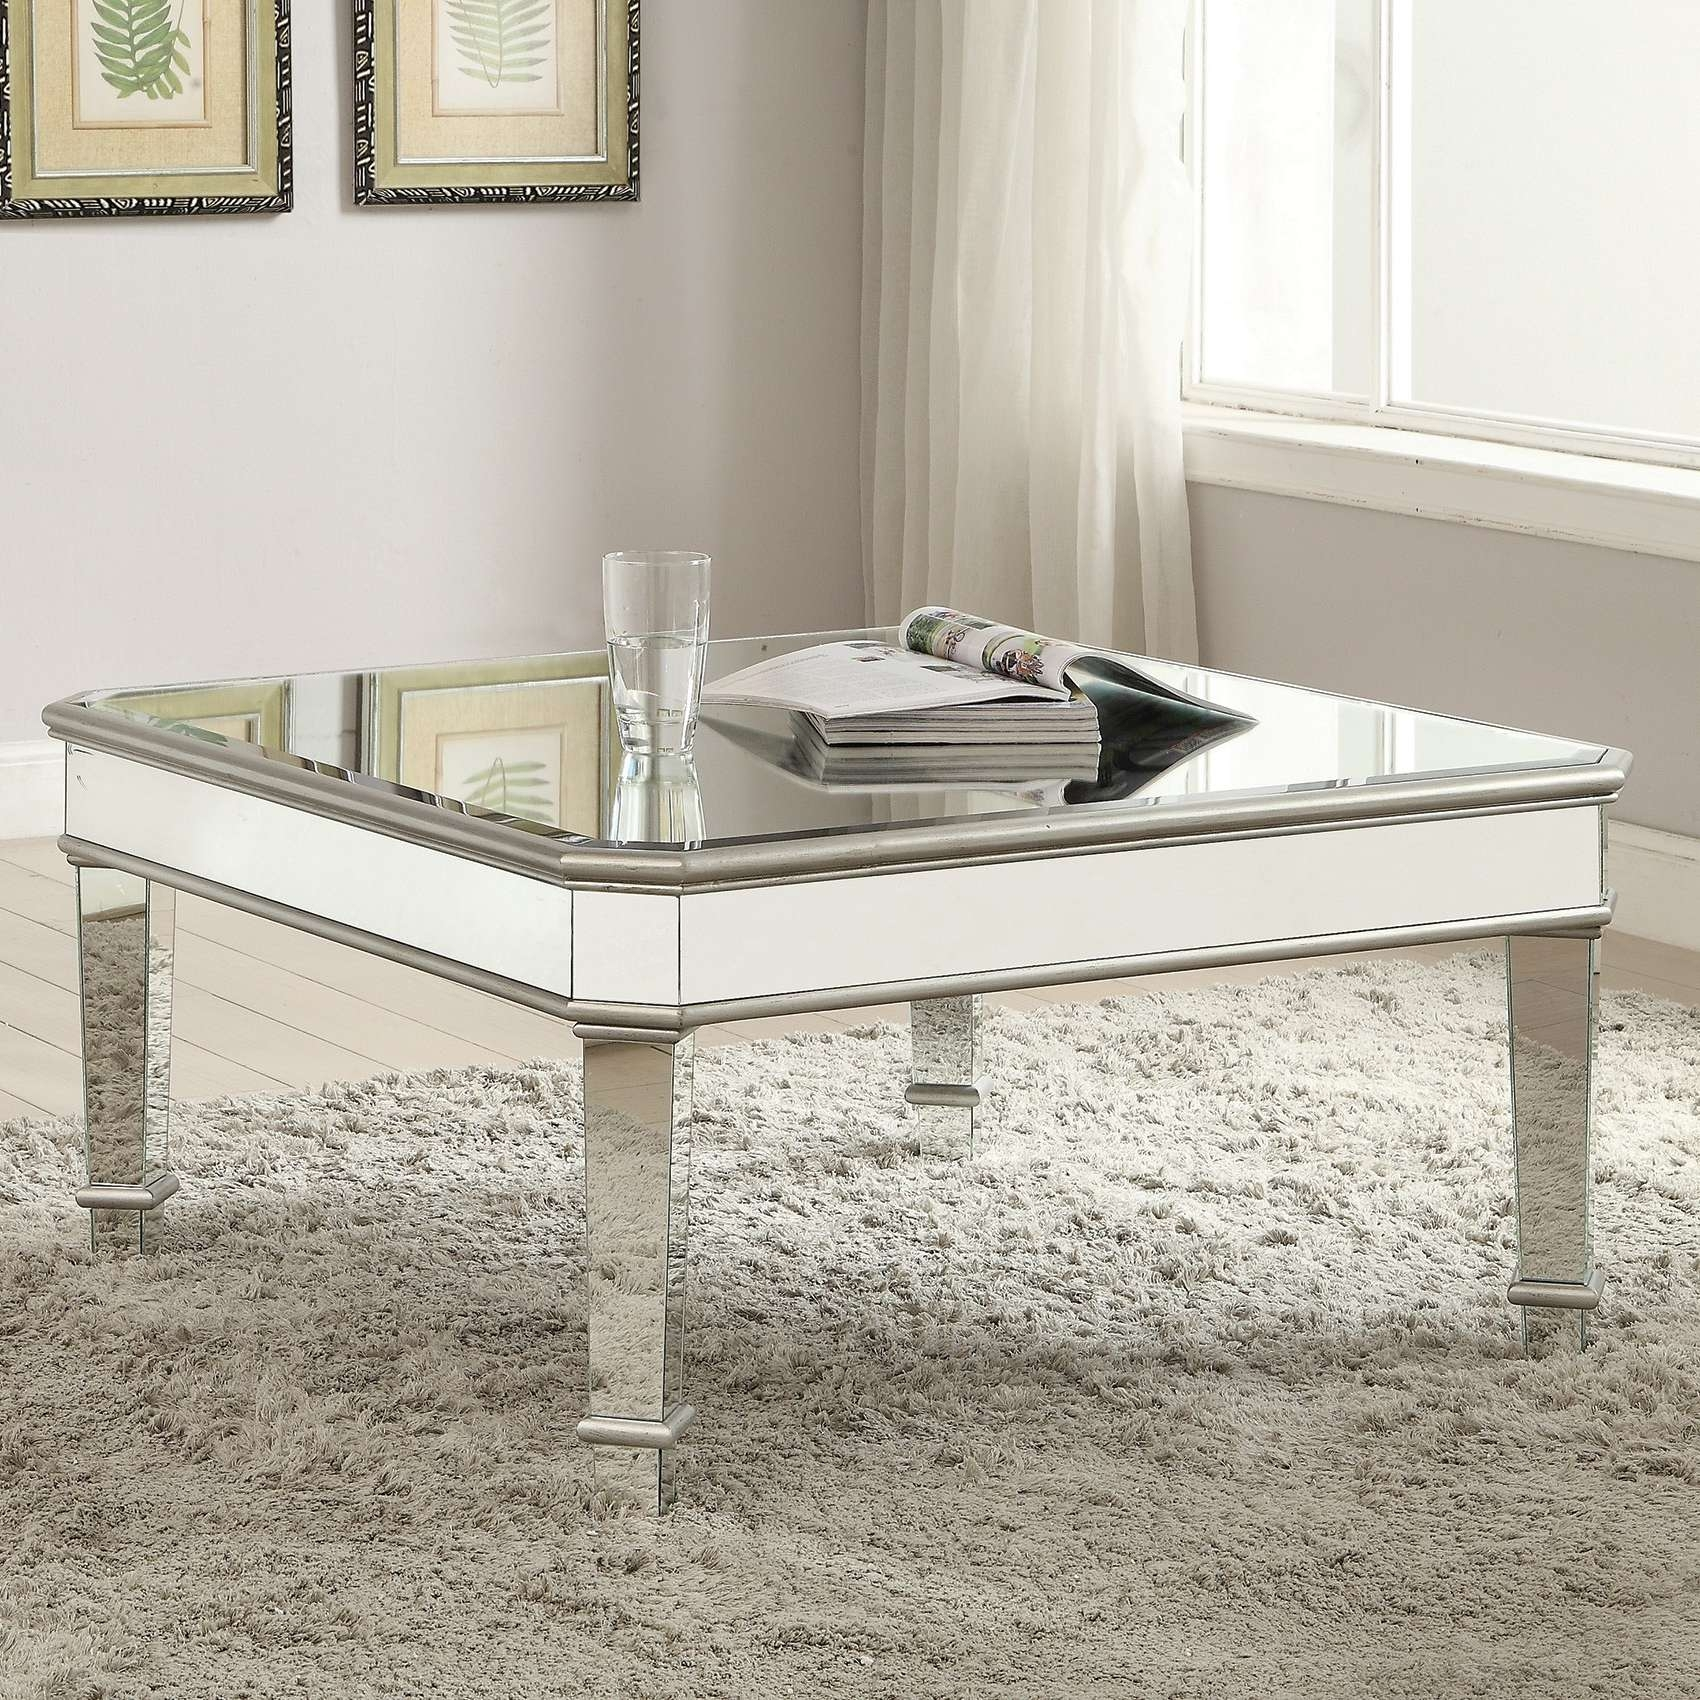 Coffee Tables : Antique Mirrored Coffee Tables Awesome Round Table Regarding Best And Newest Round Mirrored Coffee Tables (View 4 of 20)